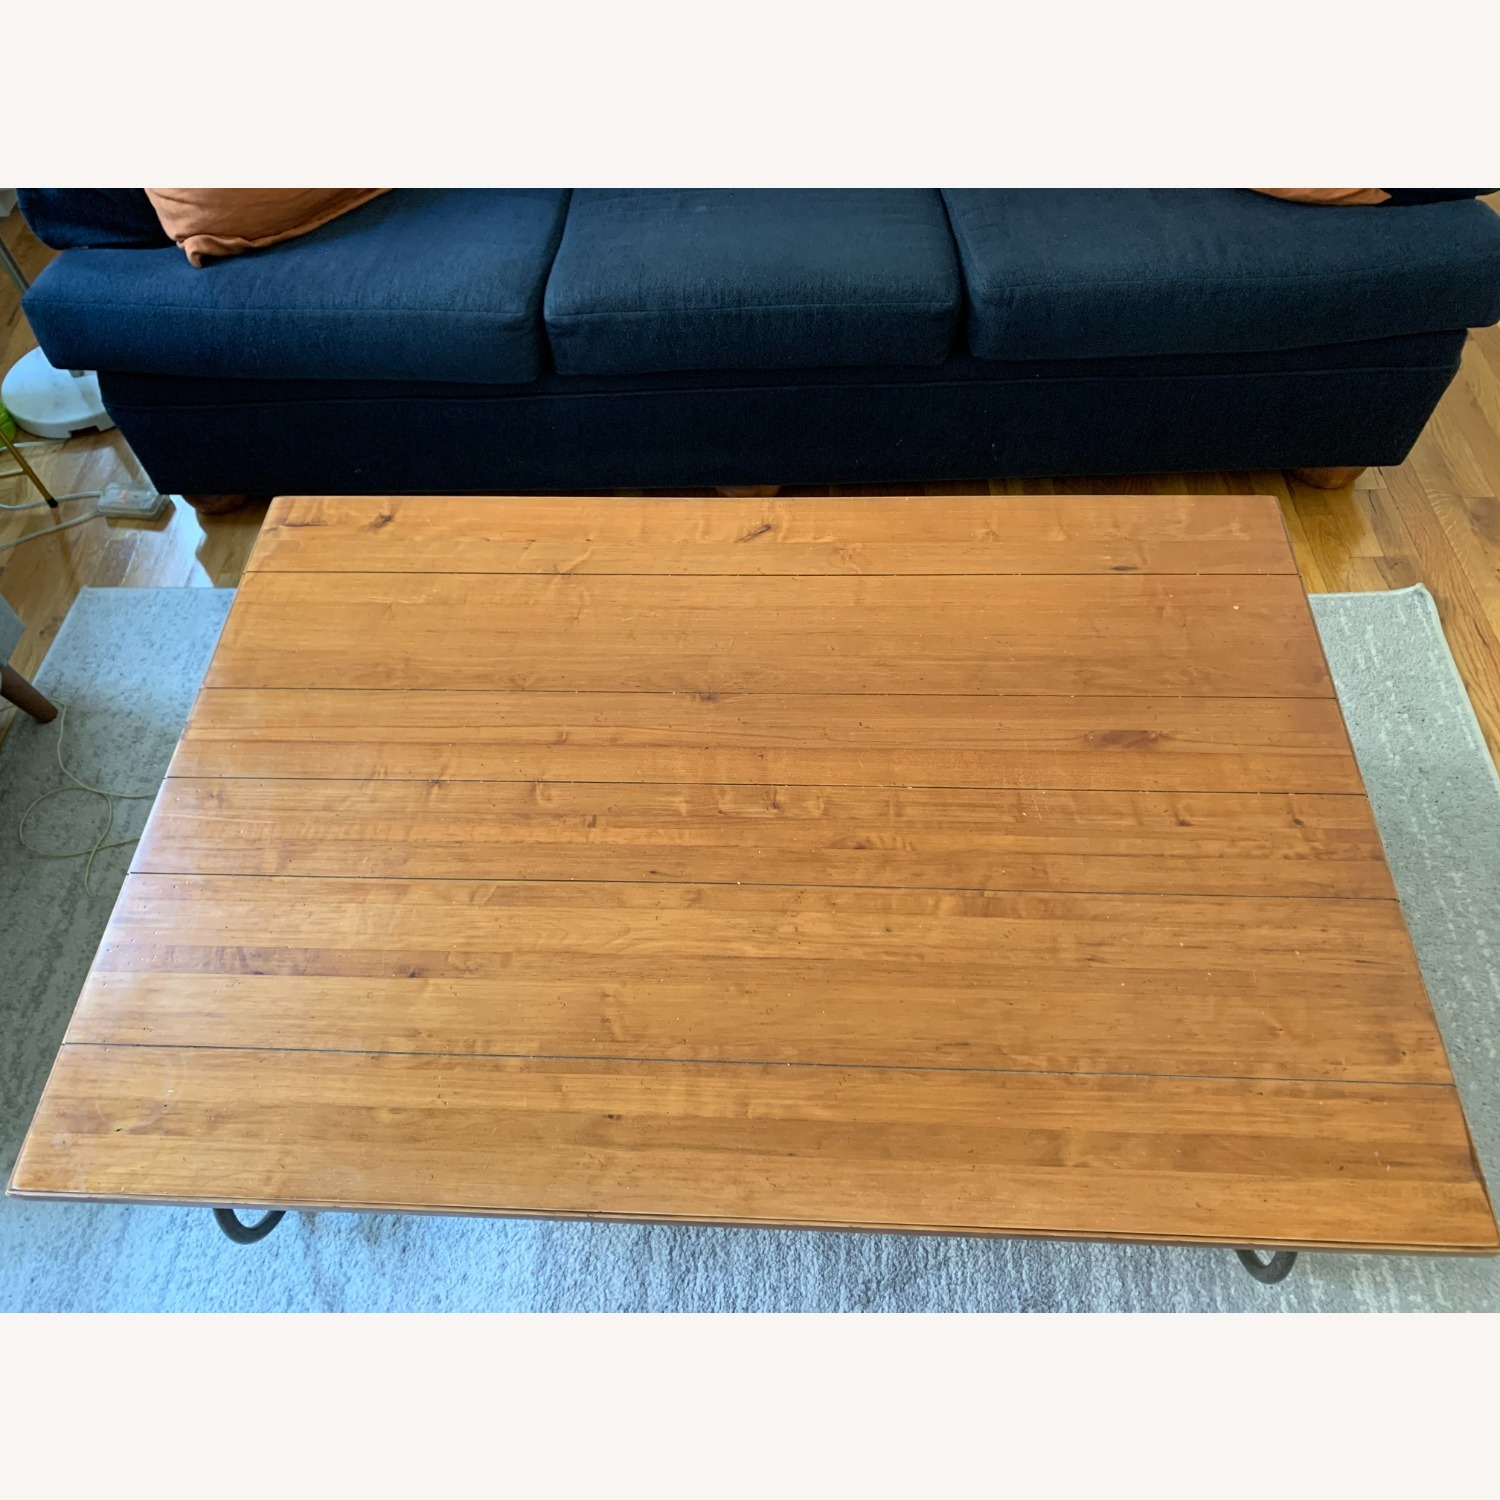 Ethan Allen Coffee Table - image-2